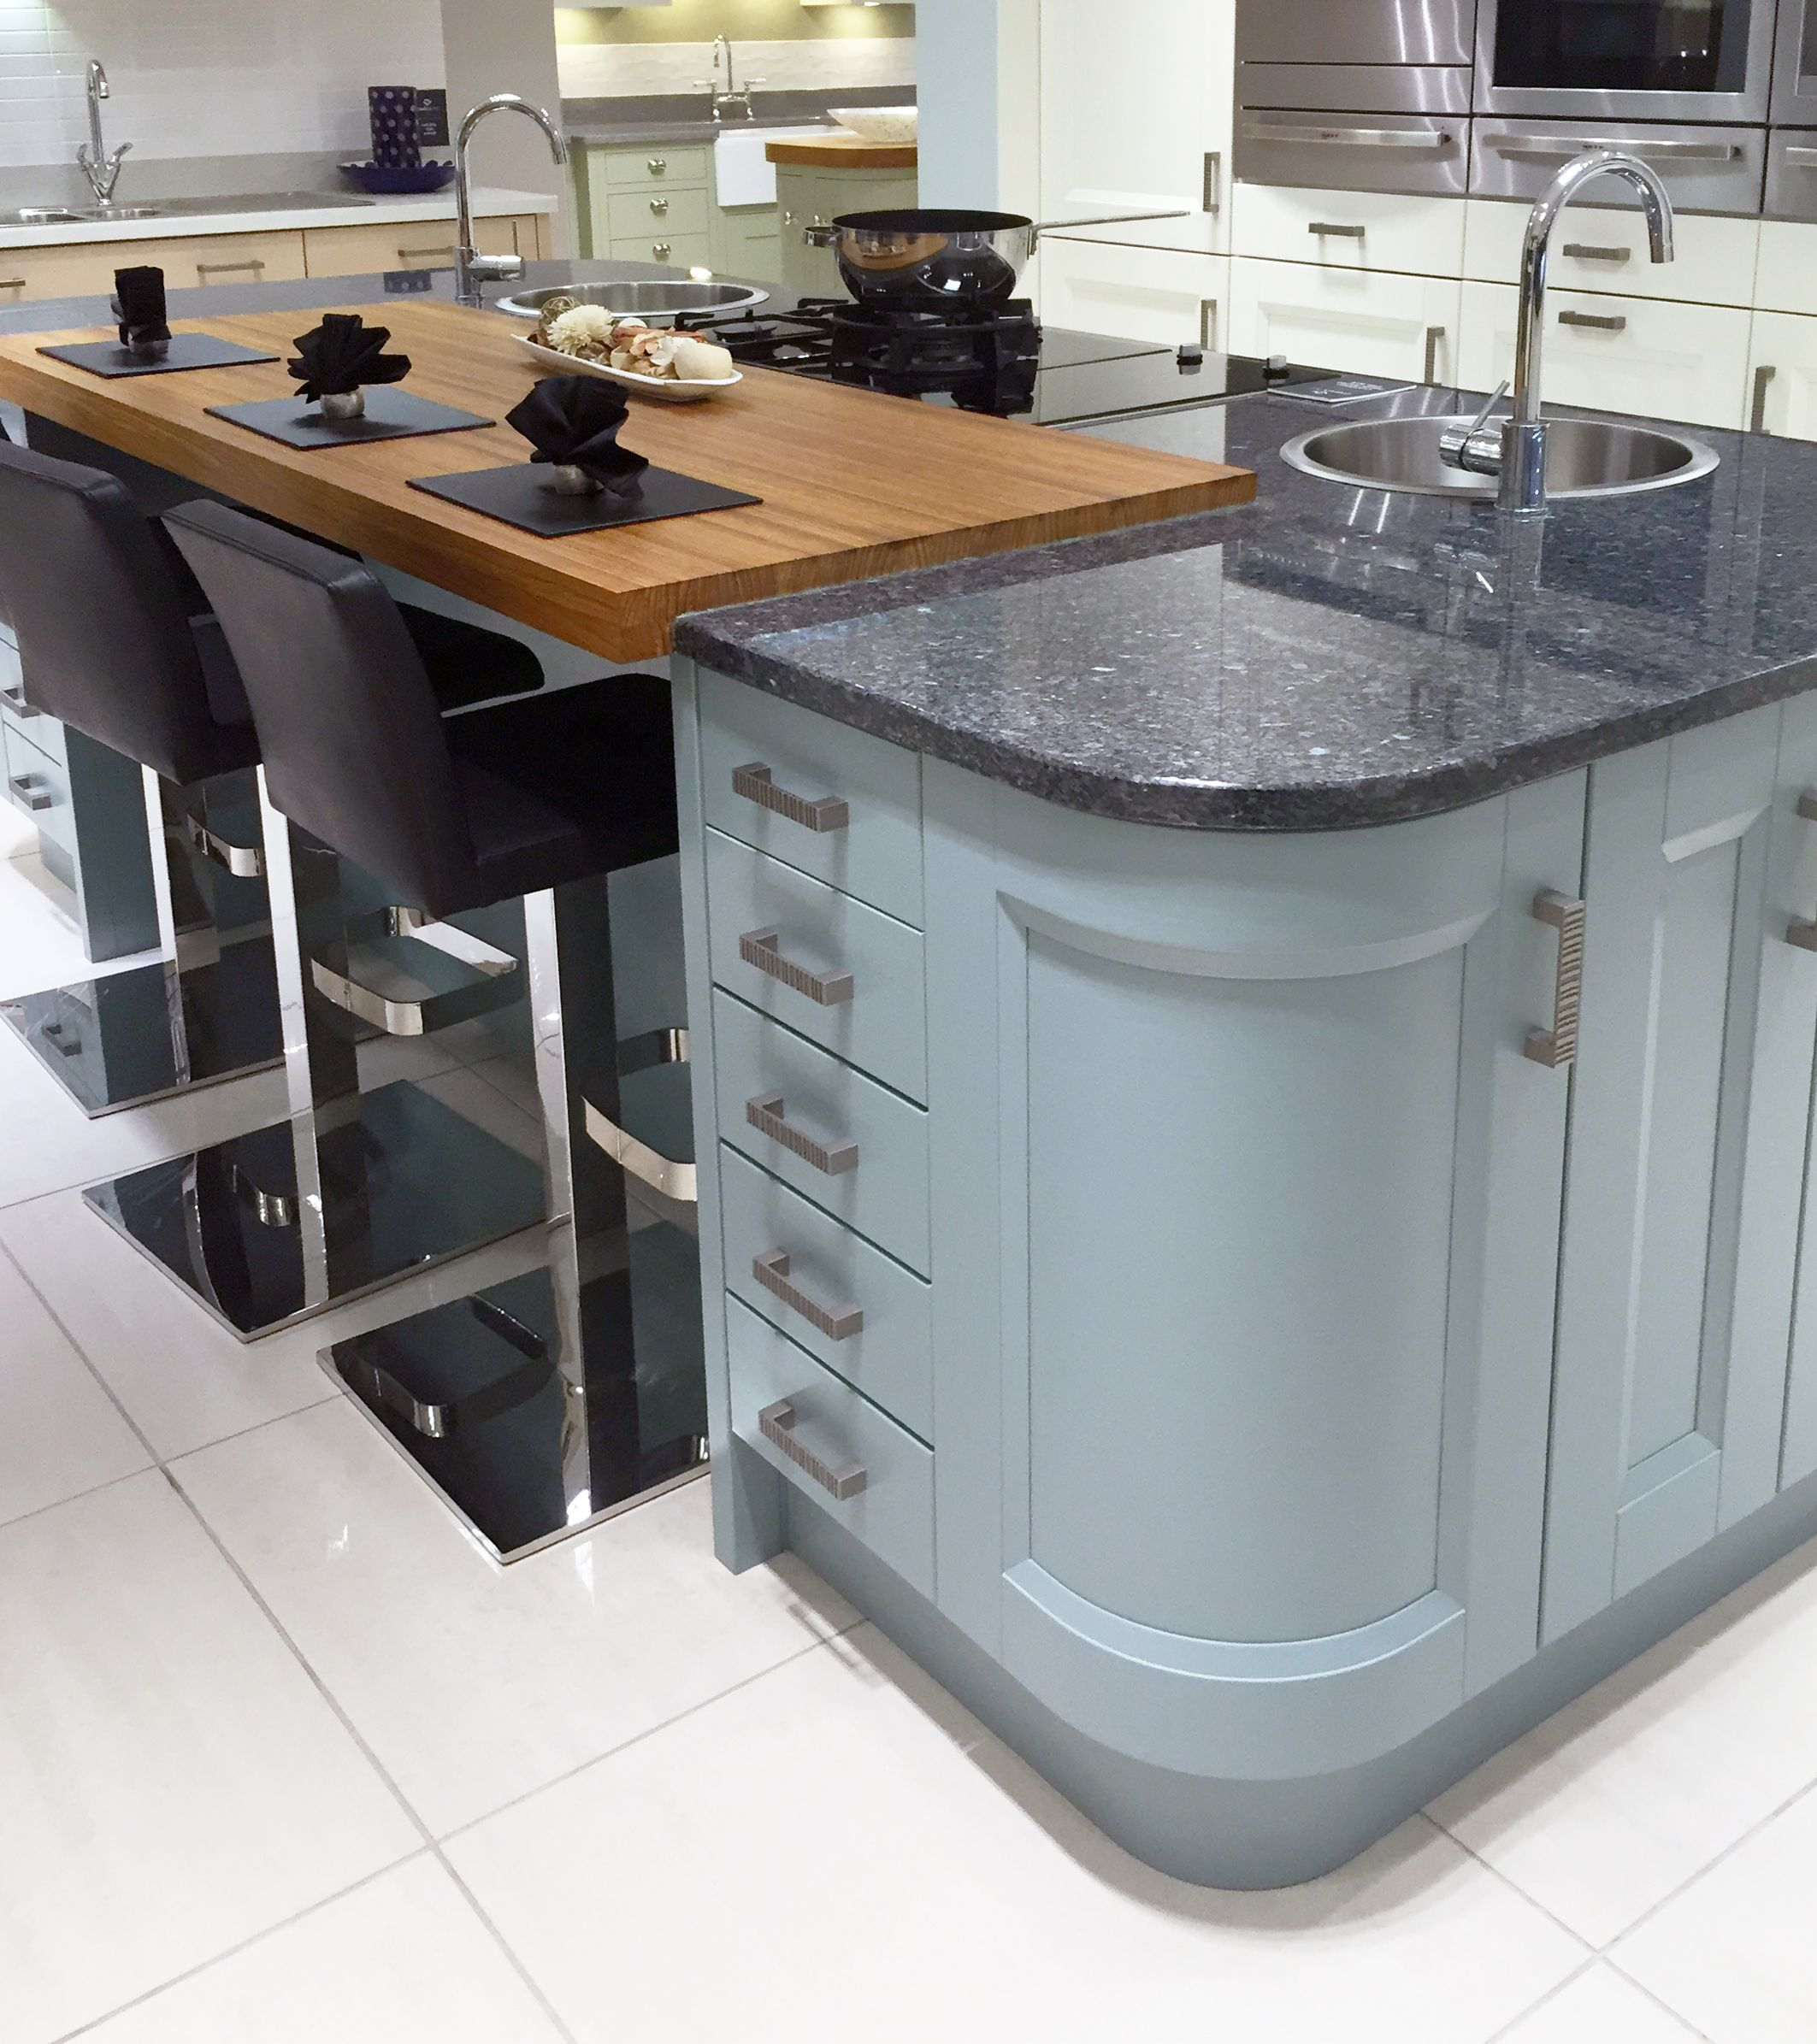 Contemporary kitchen island design in blue, with curved